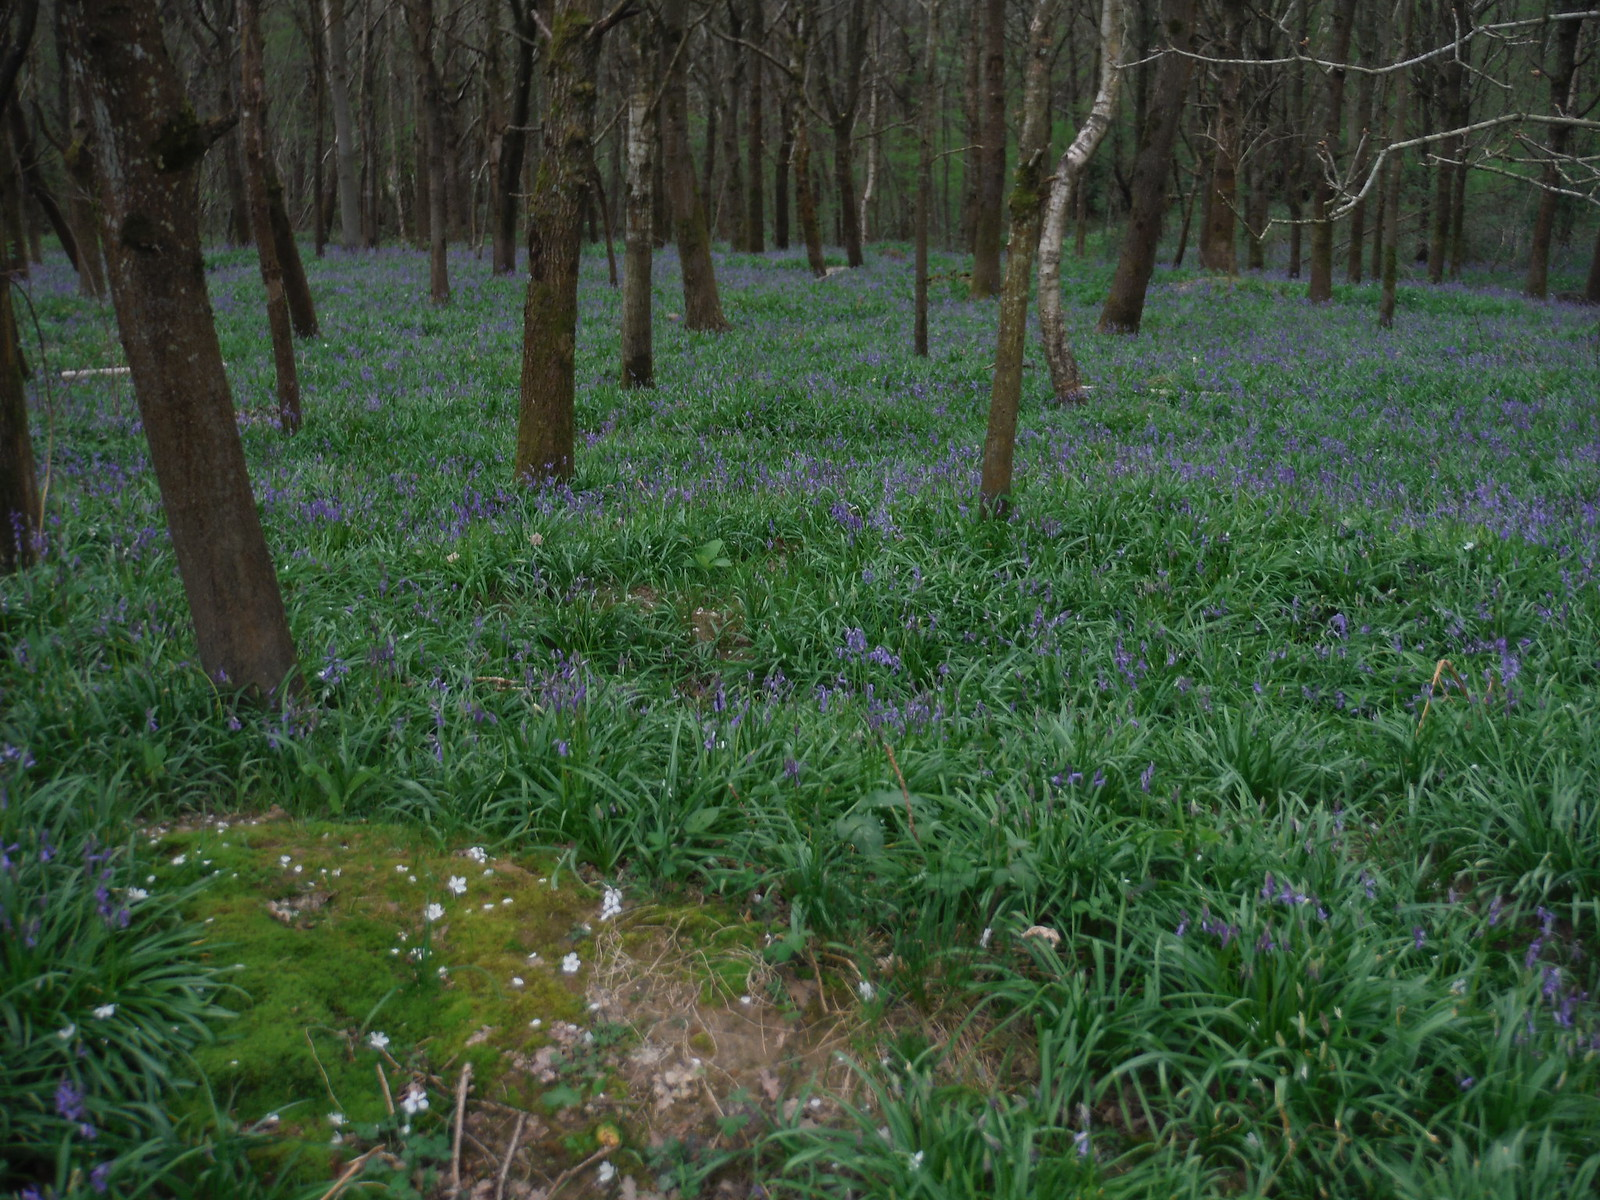 Bluebells in Close Copse SWC Walk 48 Haslemere to Midhurst (via Lurgashall or Lickfold)